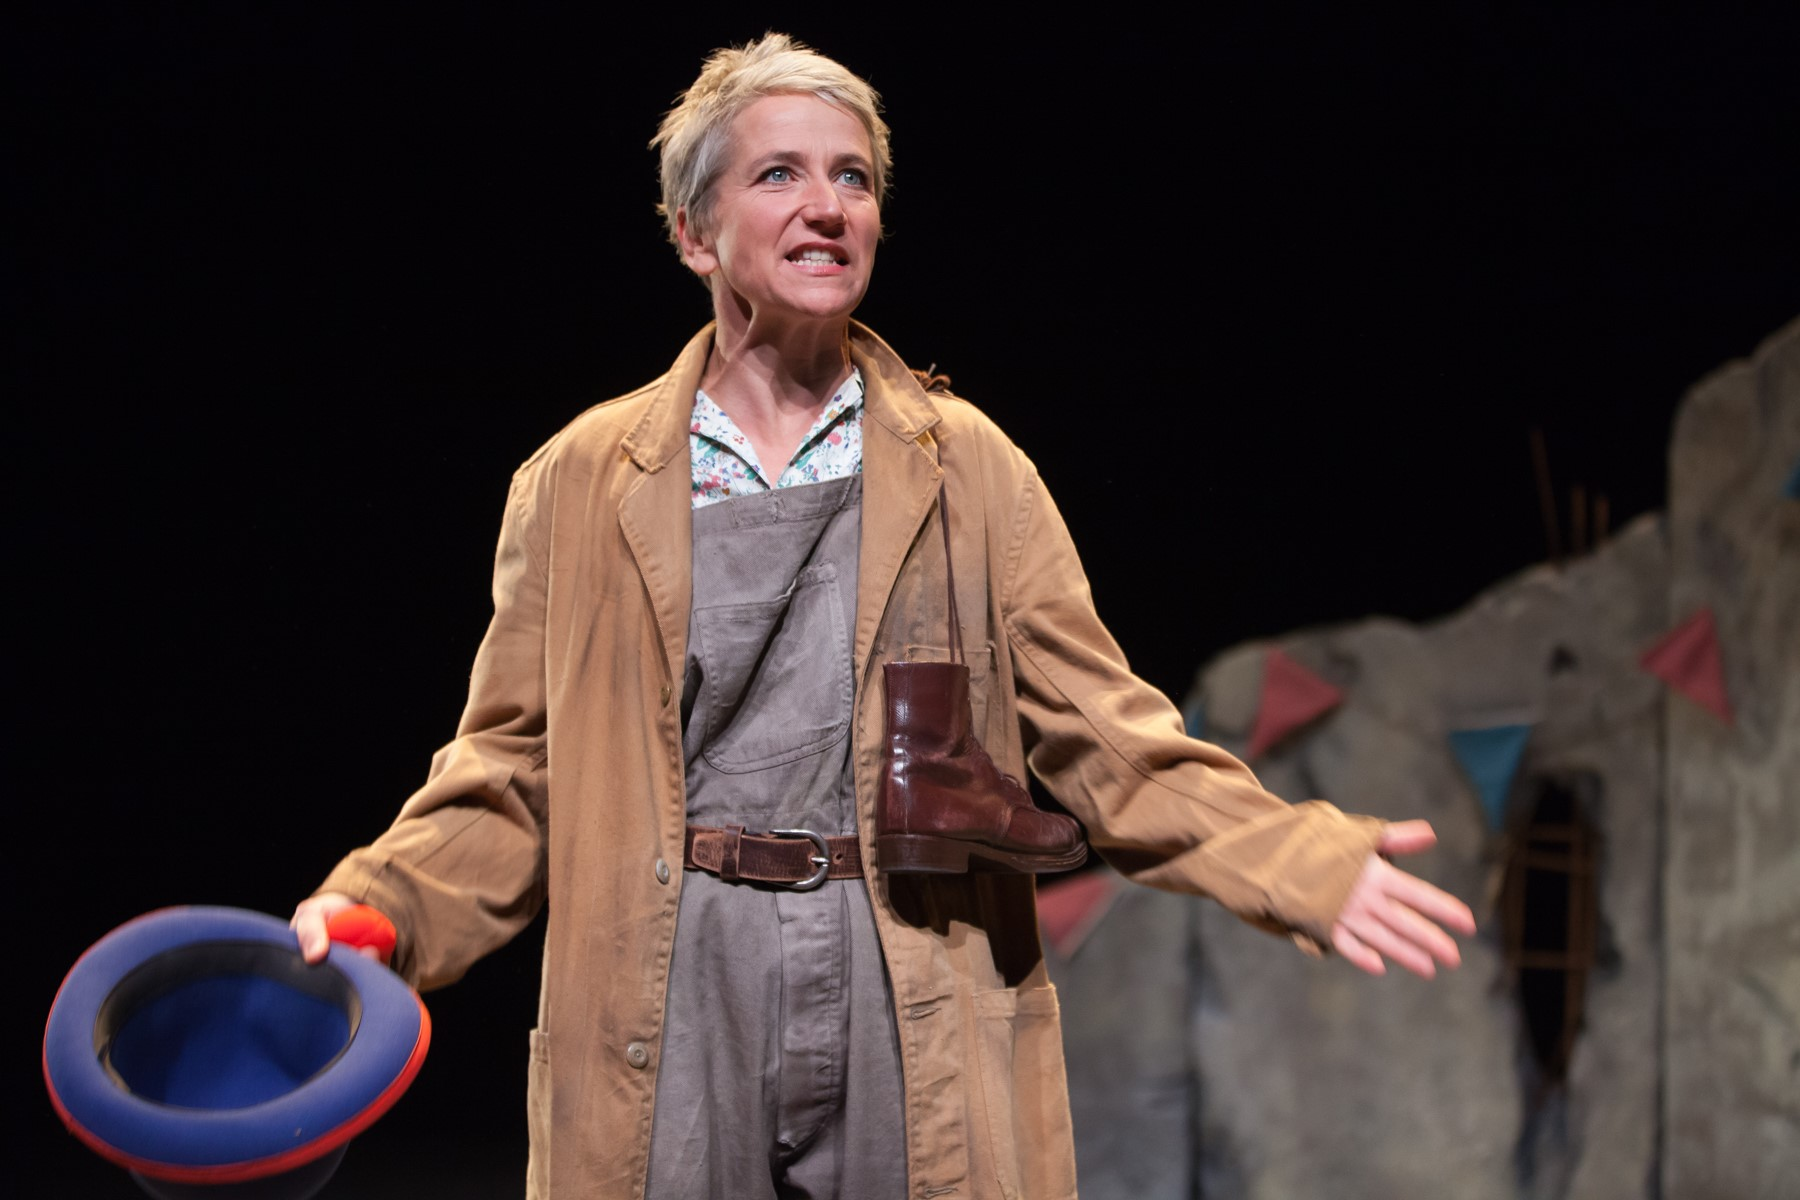 After the wartime bombing of Dresden, refugees sought hope between a city in flames and their own country's dying regime. 'An Elephant in the Garden' presents the Michael Morpurgo story on stage. (photo courtesy of Pittsburgh Cultural Trust)